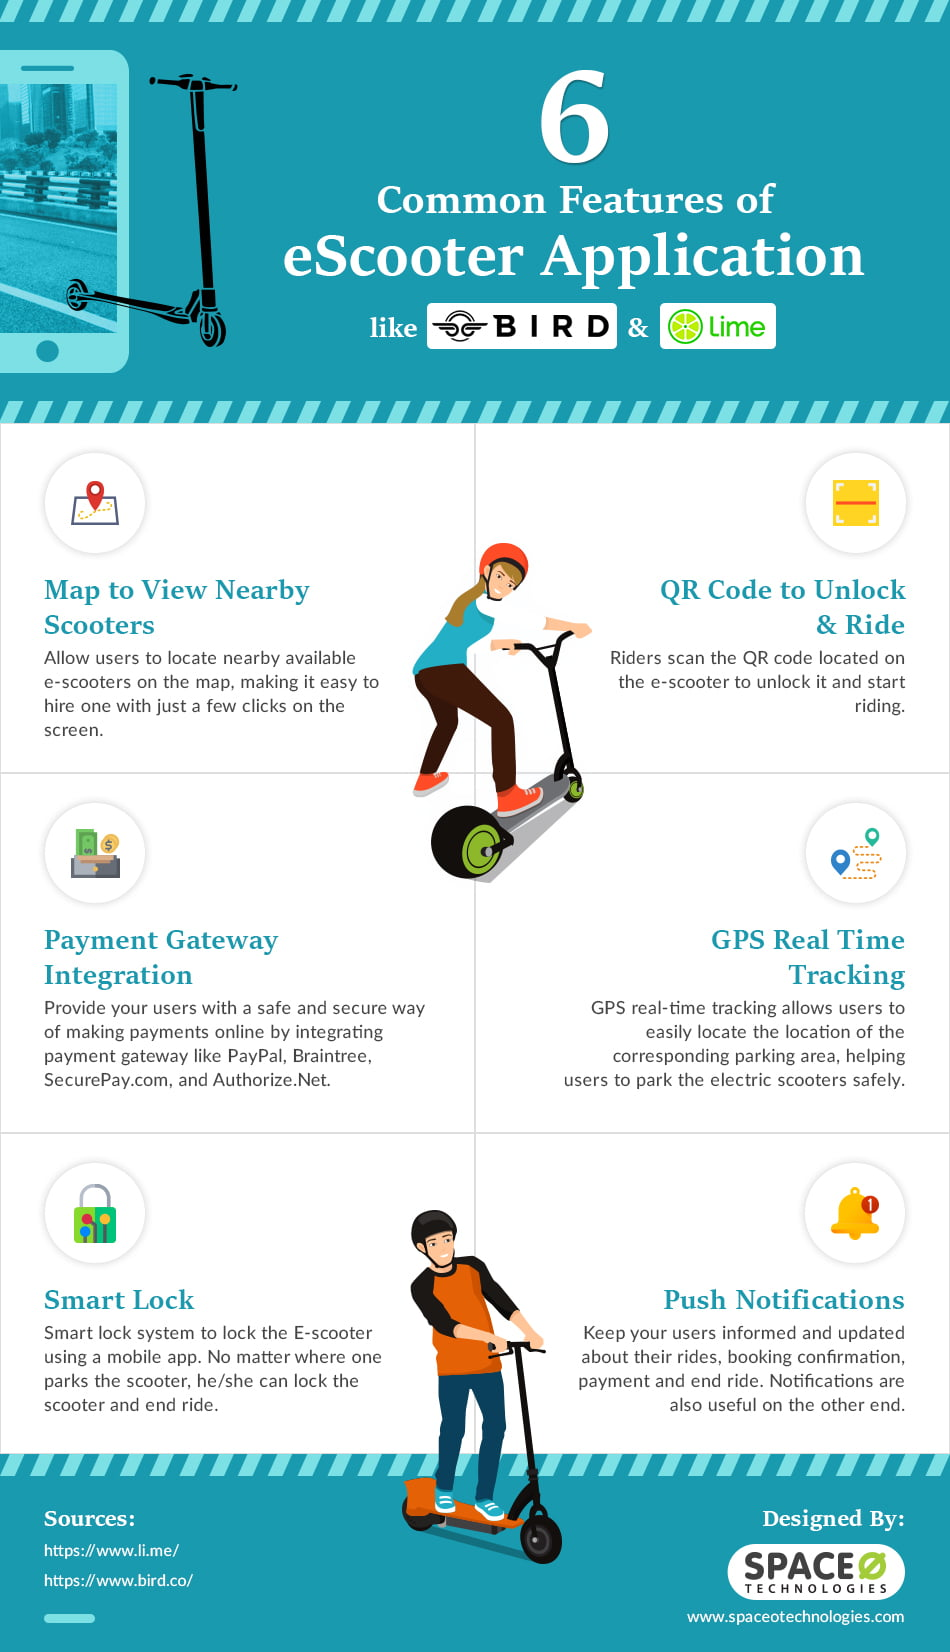 eScooter-app-features-infographic